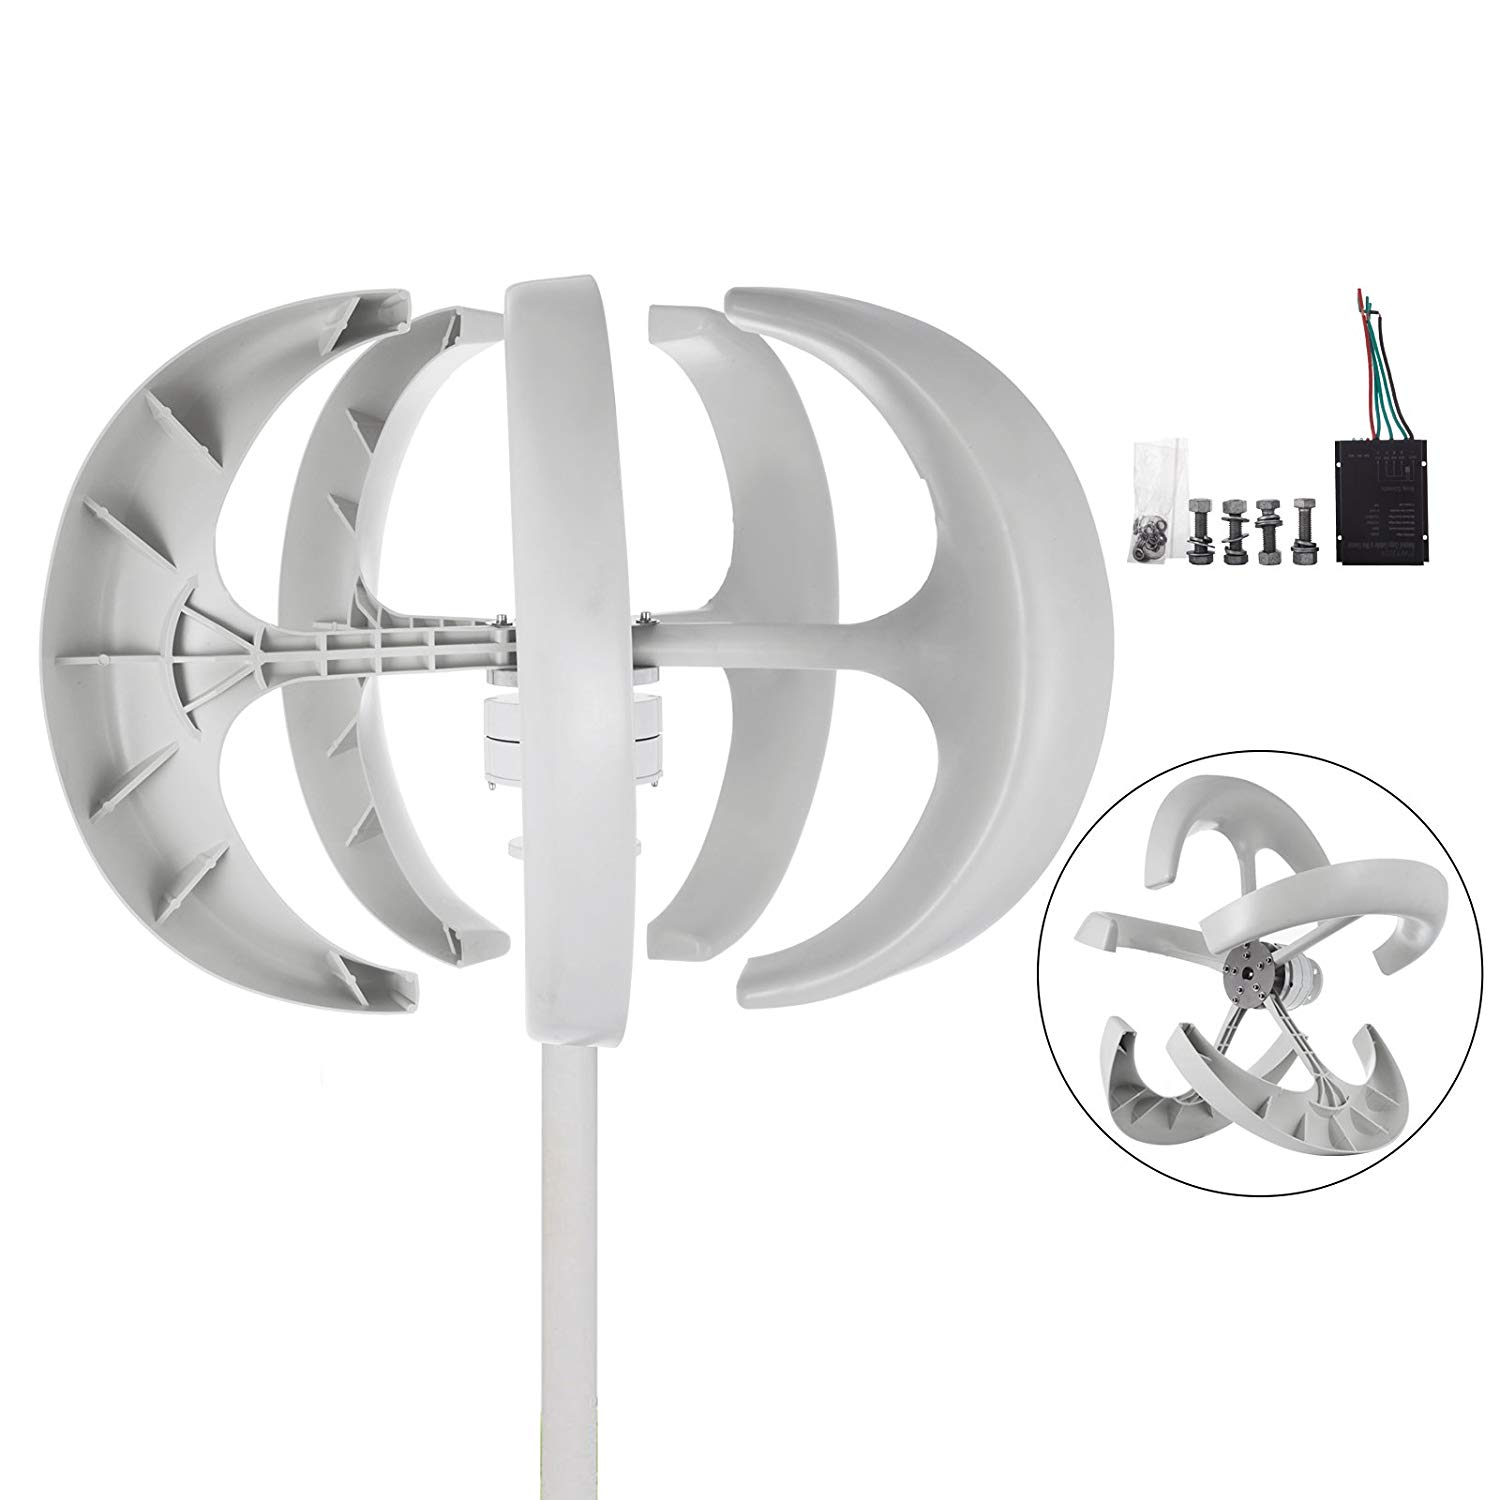 Happybuy Wind Turbine 400W DC 24V Wind Turbine Generator Kit 5 Blades Vertical Wind Power Turbine Generato White Lantern Style With Charge Controller for Power Supplementation (400W 24V)